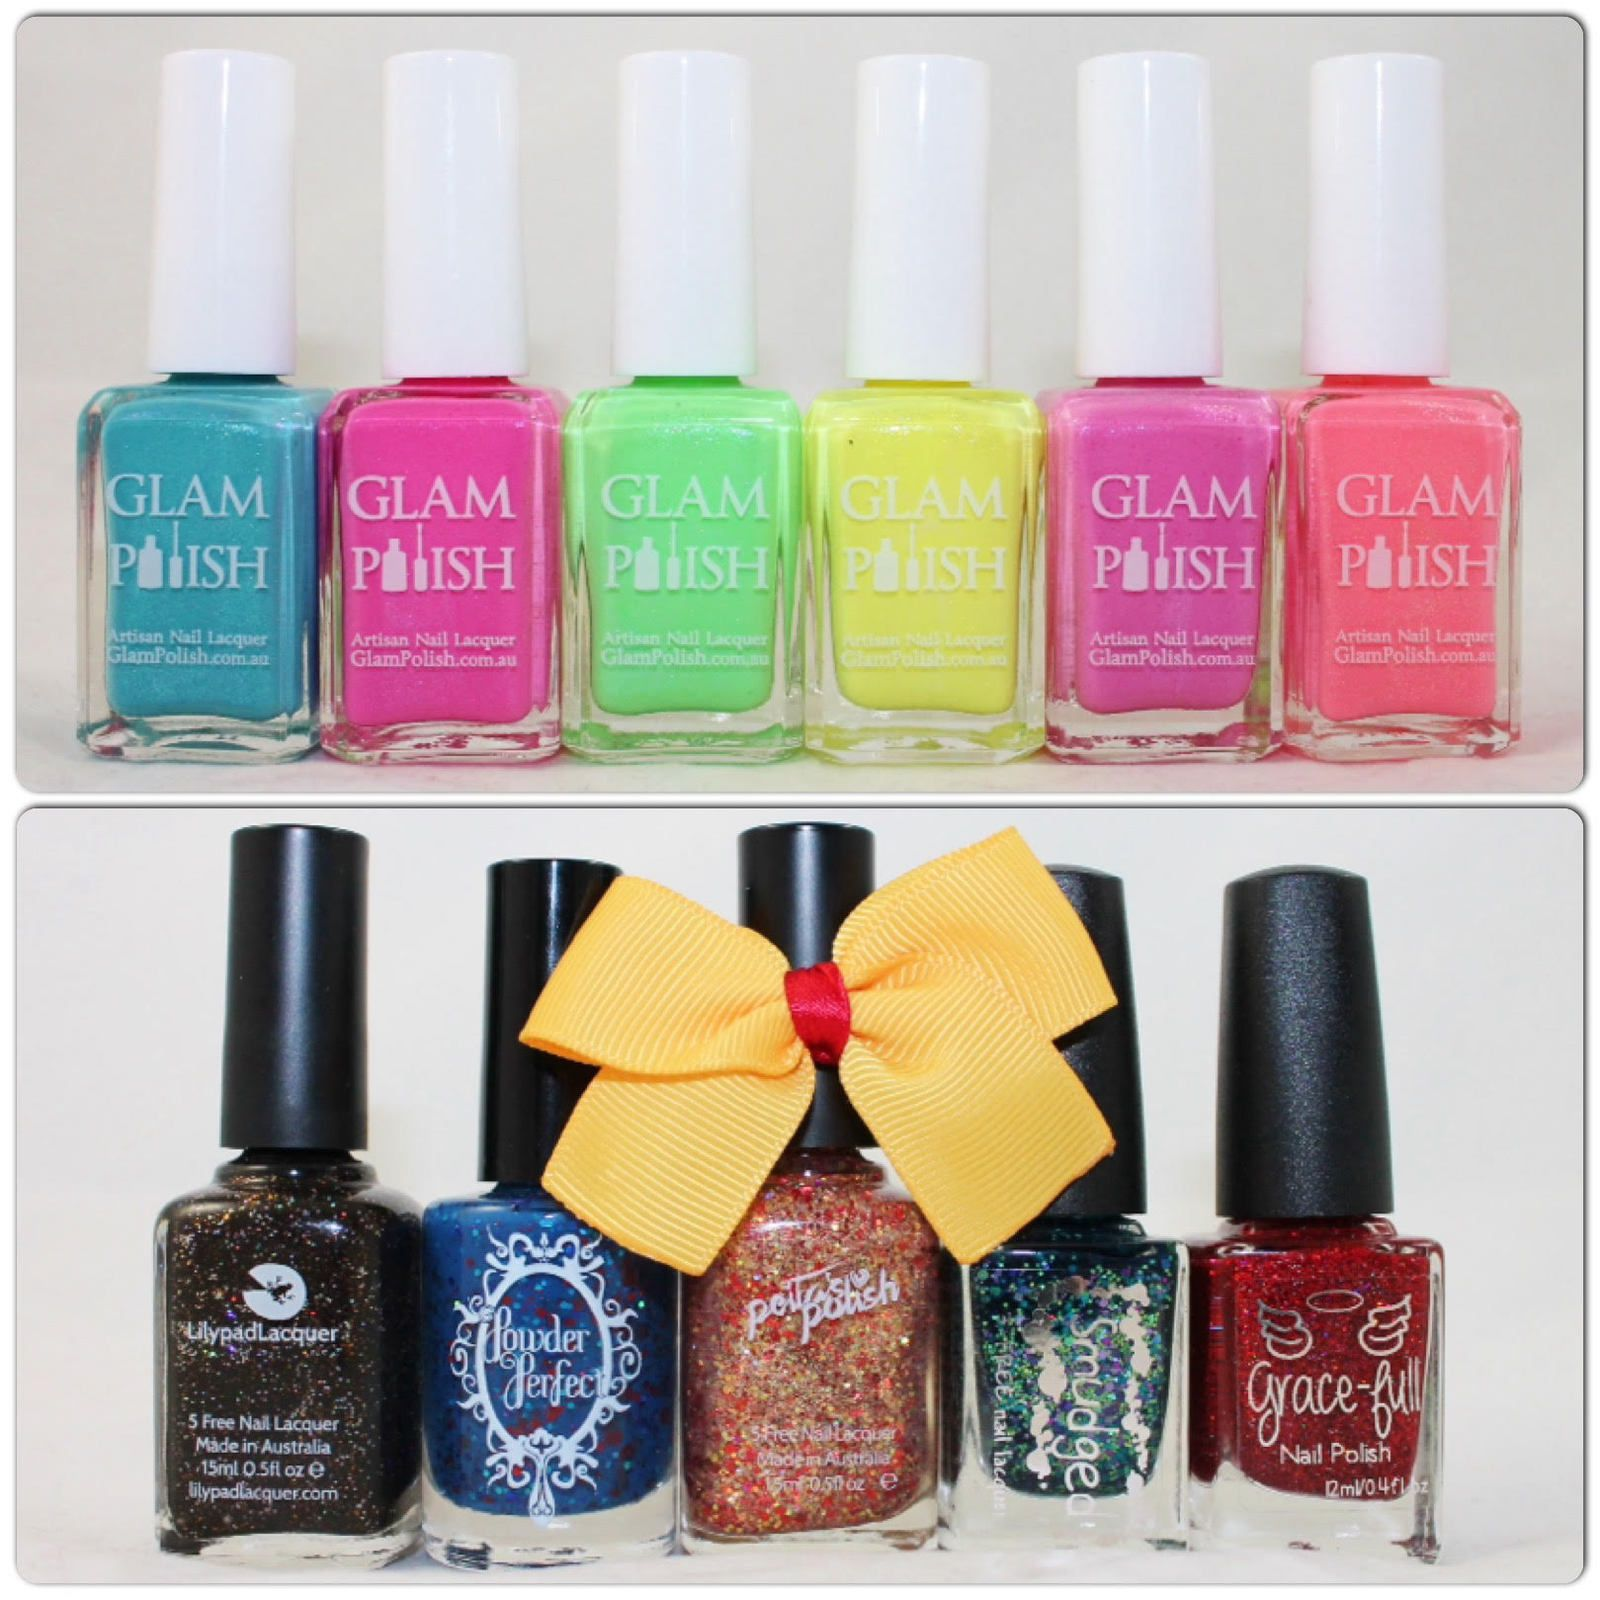 Glam Polish Sweet Duos: Blueberry Pie, Berry Parfait, Apple Mint, Lemon Meringue, Very Berry, Sweet Peach. What's Indie Box - September 2015 - Avengers